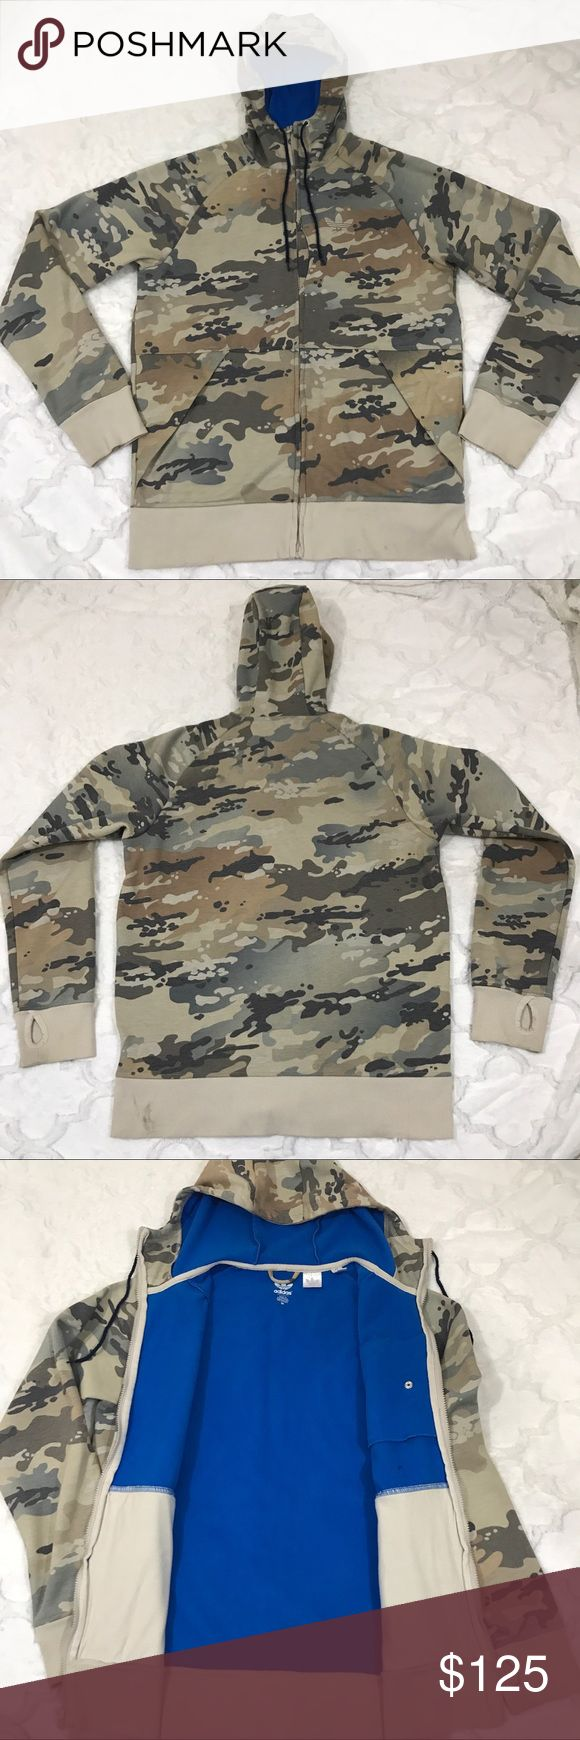 Adidas camo jacket hoodie sweatshirt M Men's adidas sweatshirt. Full zip. Has some stains on the jacket as you can see in the photos. This is a rare jacket and the fleece inside is in incredible condition. Non smoking home adidas Jackets & Coats